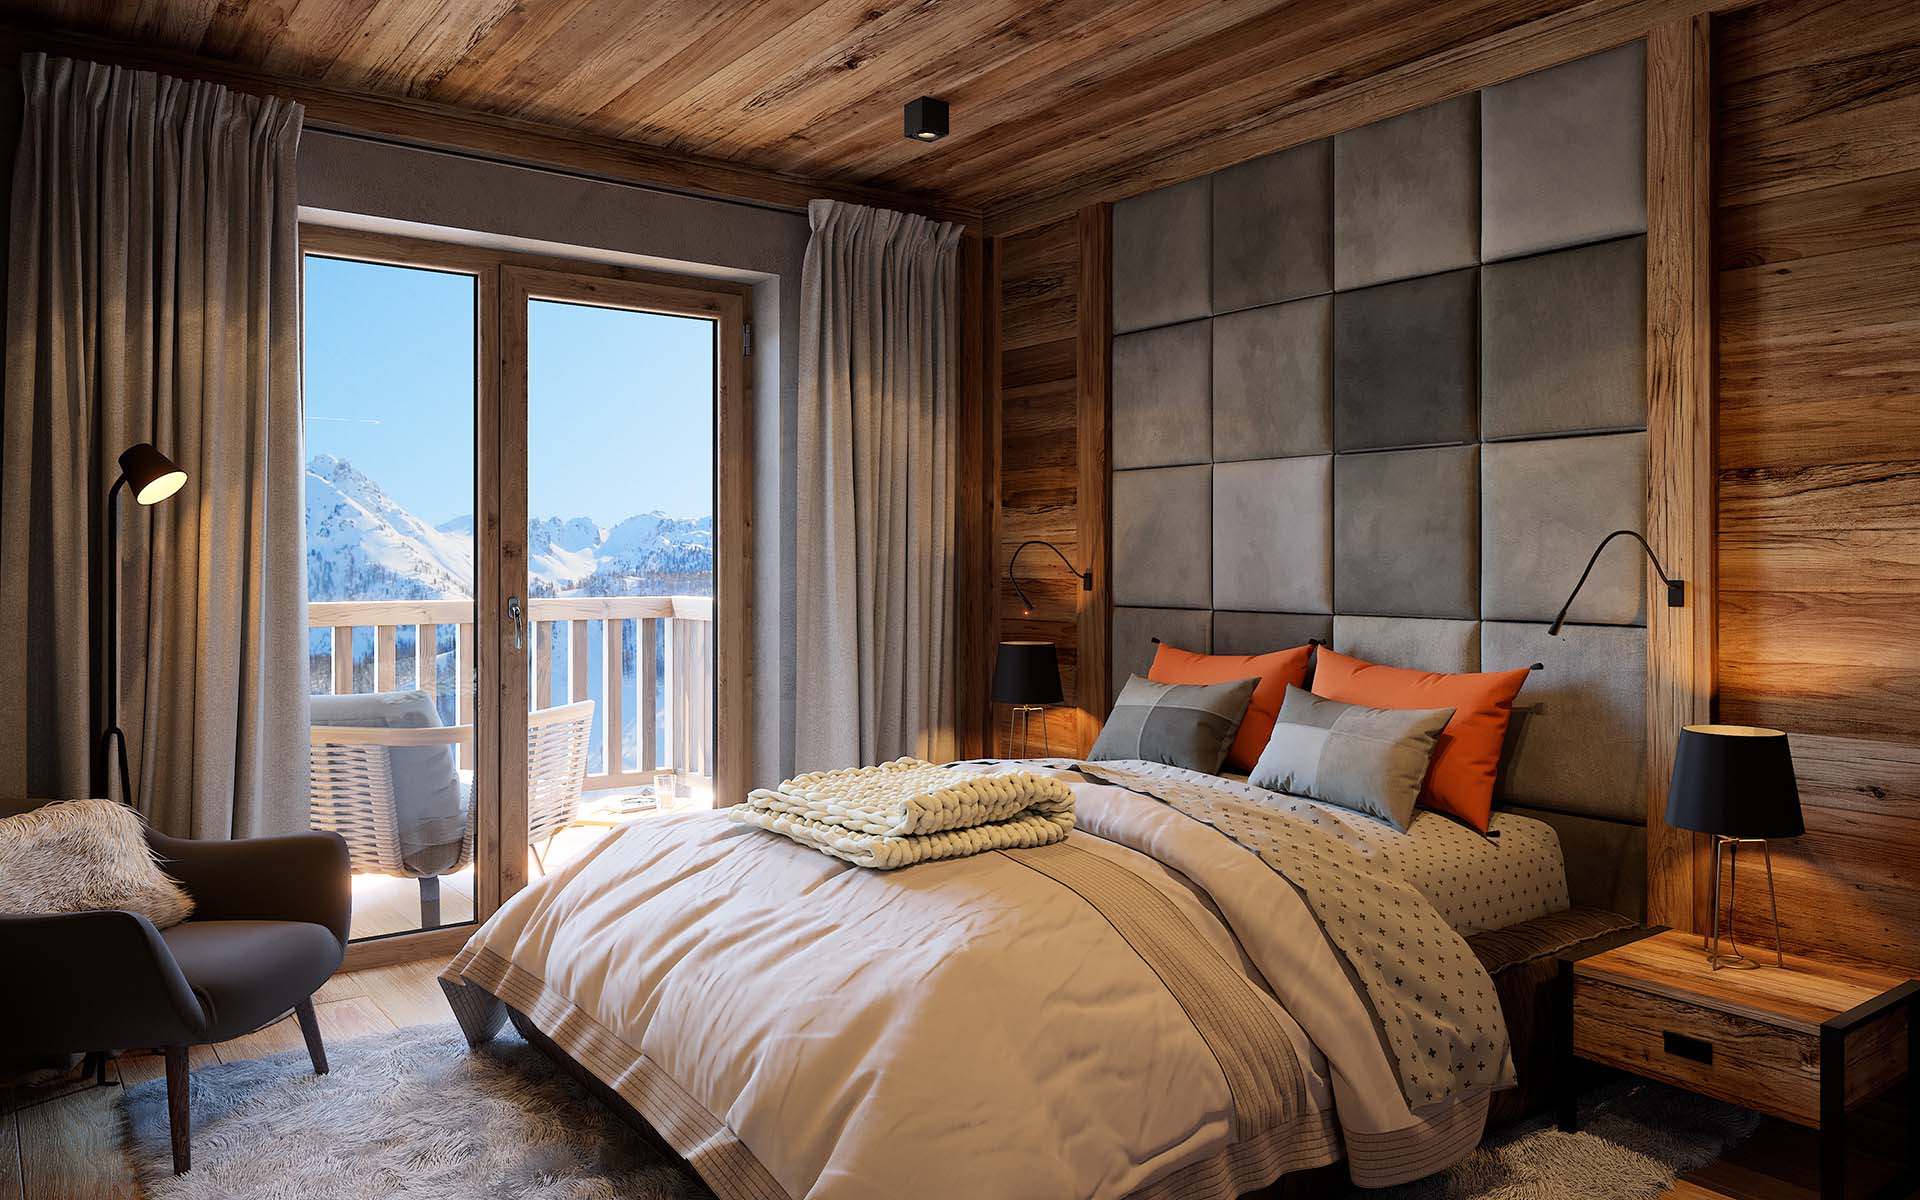 3D Perspective view of a room of a luxurious chalet created by a professional 3D architect.